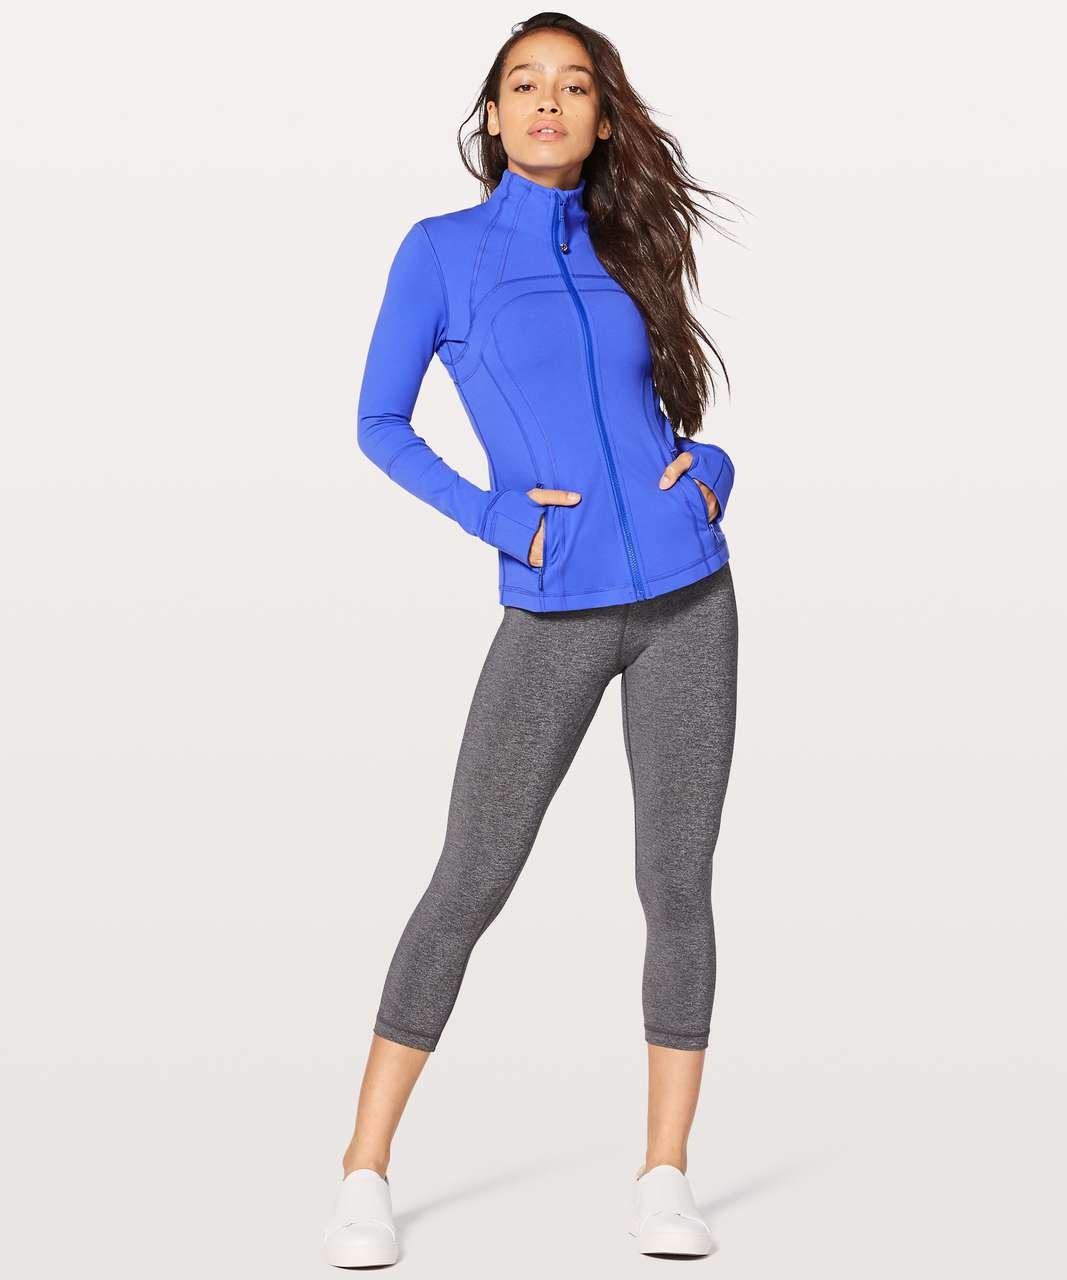 Lululemon Define Jacket - Blazer Blue (First Release)